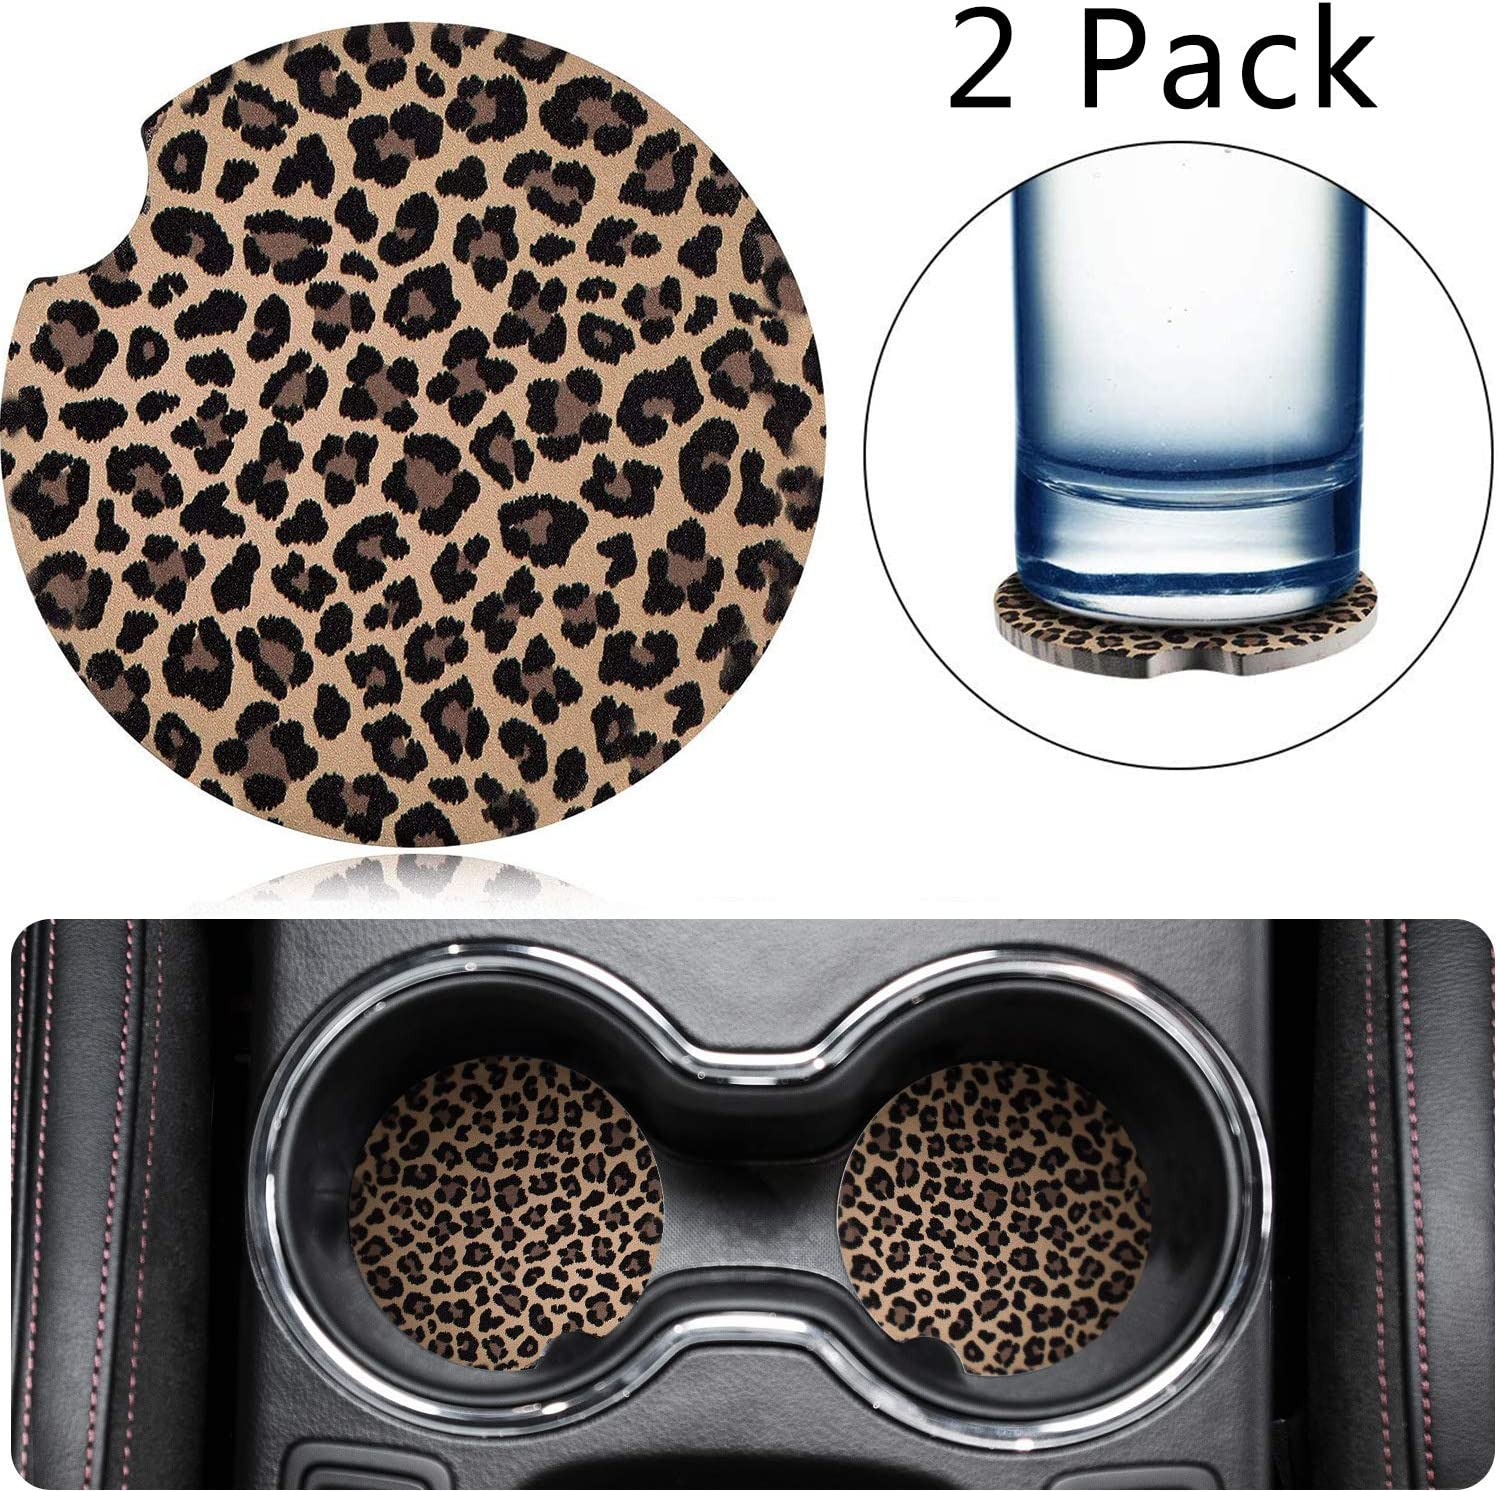 Leopard Car Coasters With Magnet Back 2 56 Inches Ceramic Stone Absorbent Car Coaster Car Cup Pad Round Drinks Mats Car Accessories For Vehicle Household Office To Protect Car And Furniture 2 Pieces